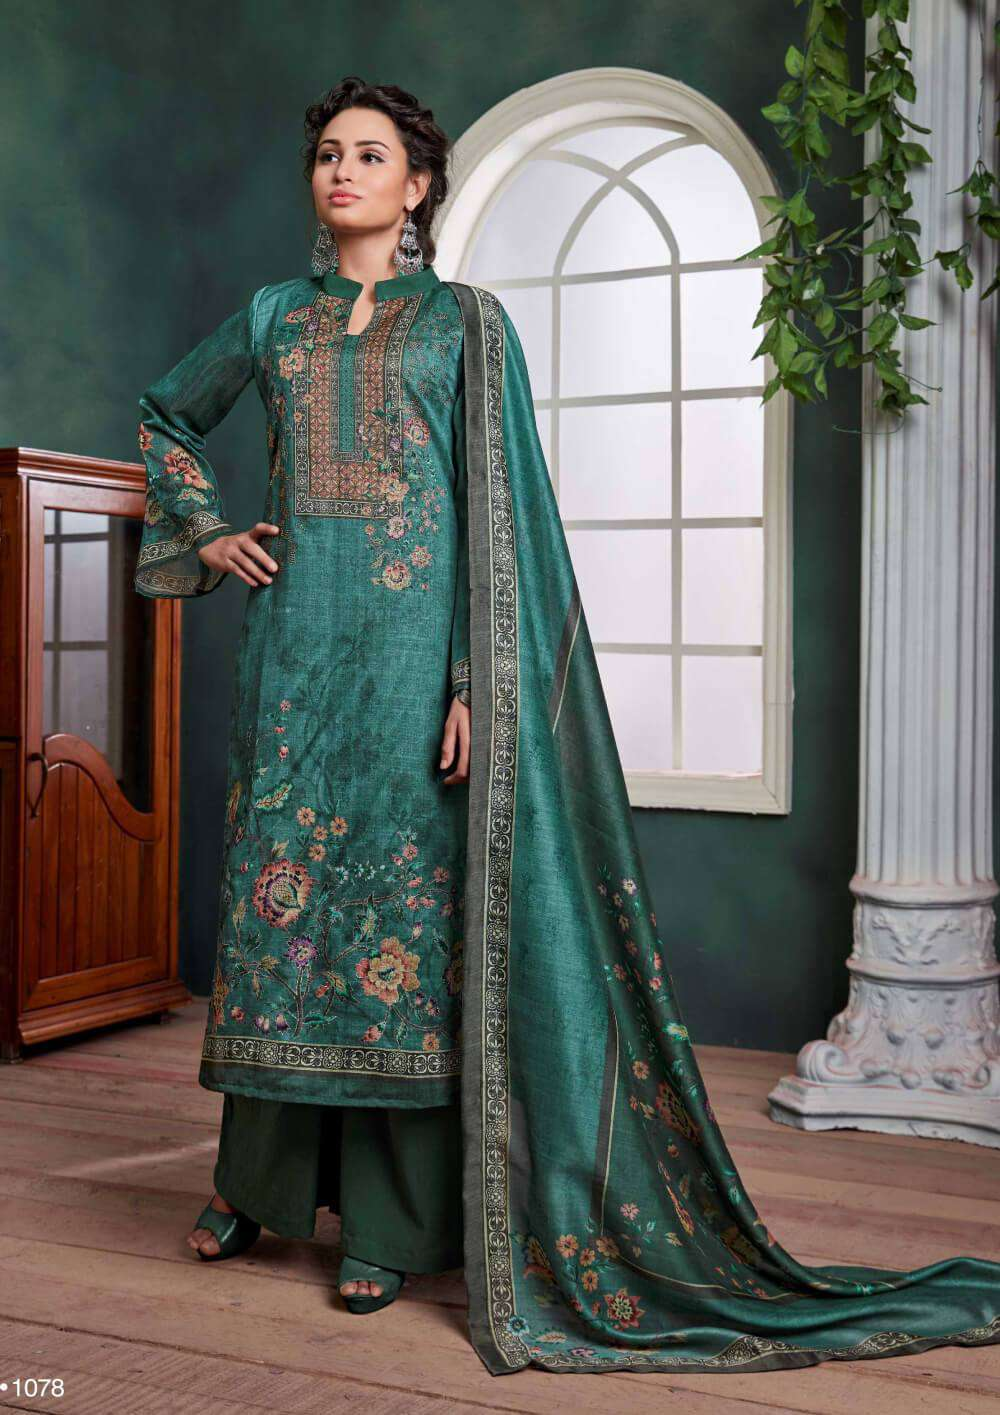 Bottle Green Digital Printed Chandri Palazzo Designer Salwar Kameez MYSK-2216